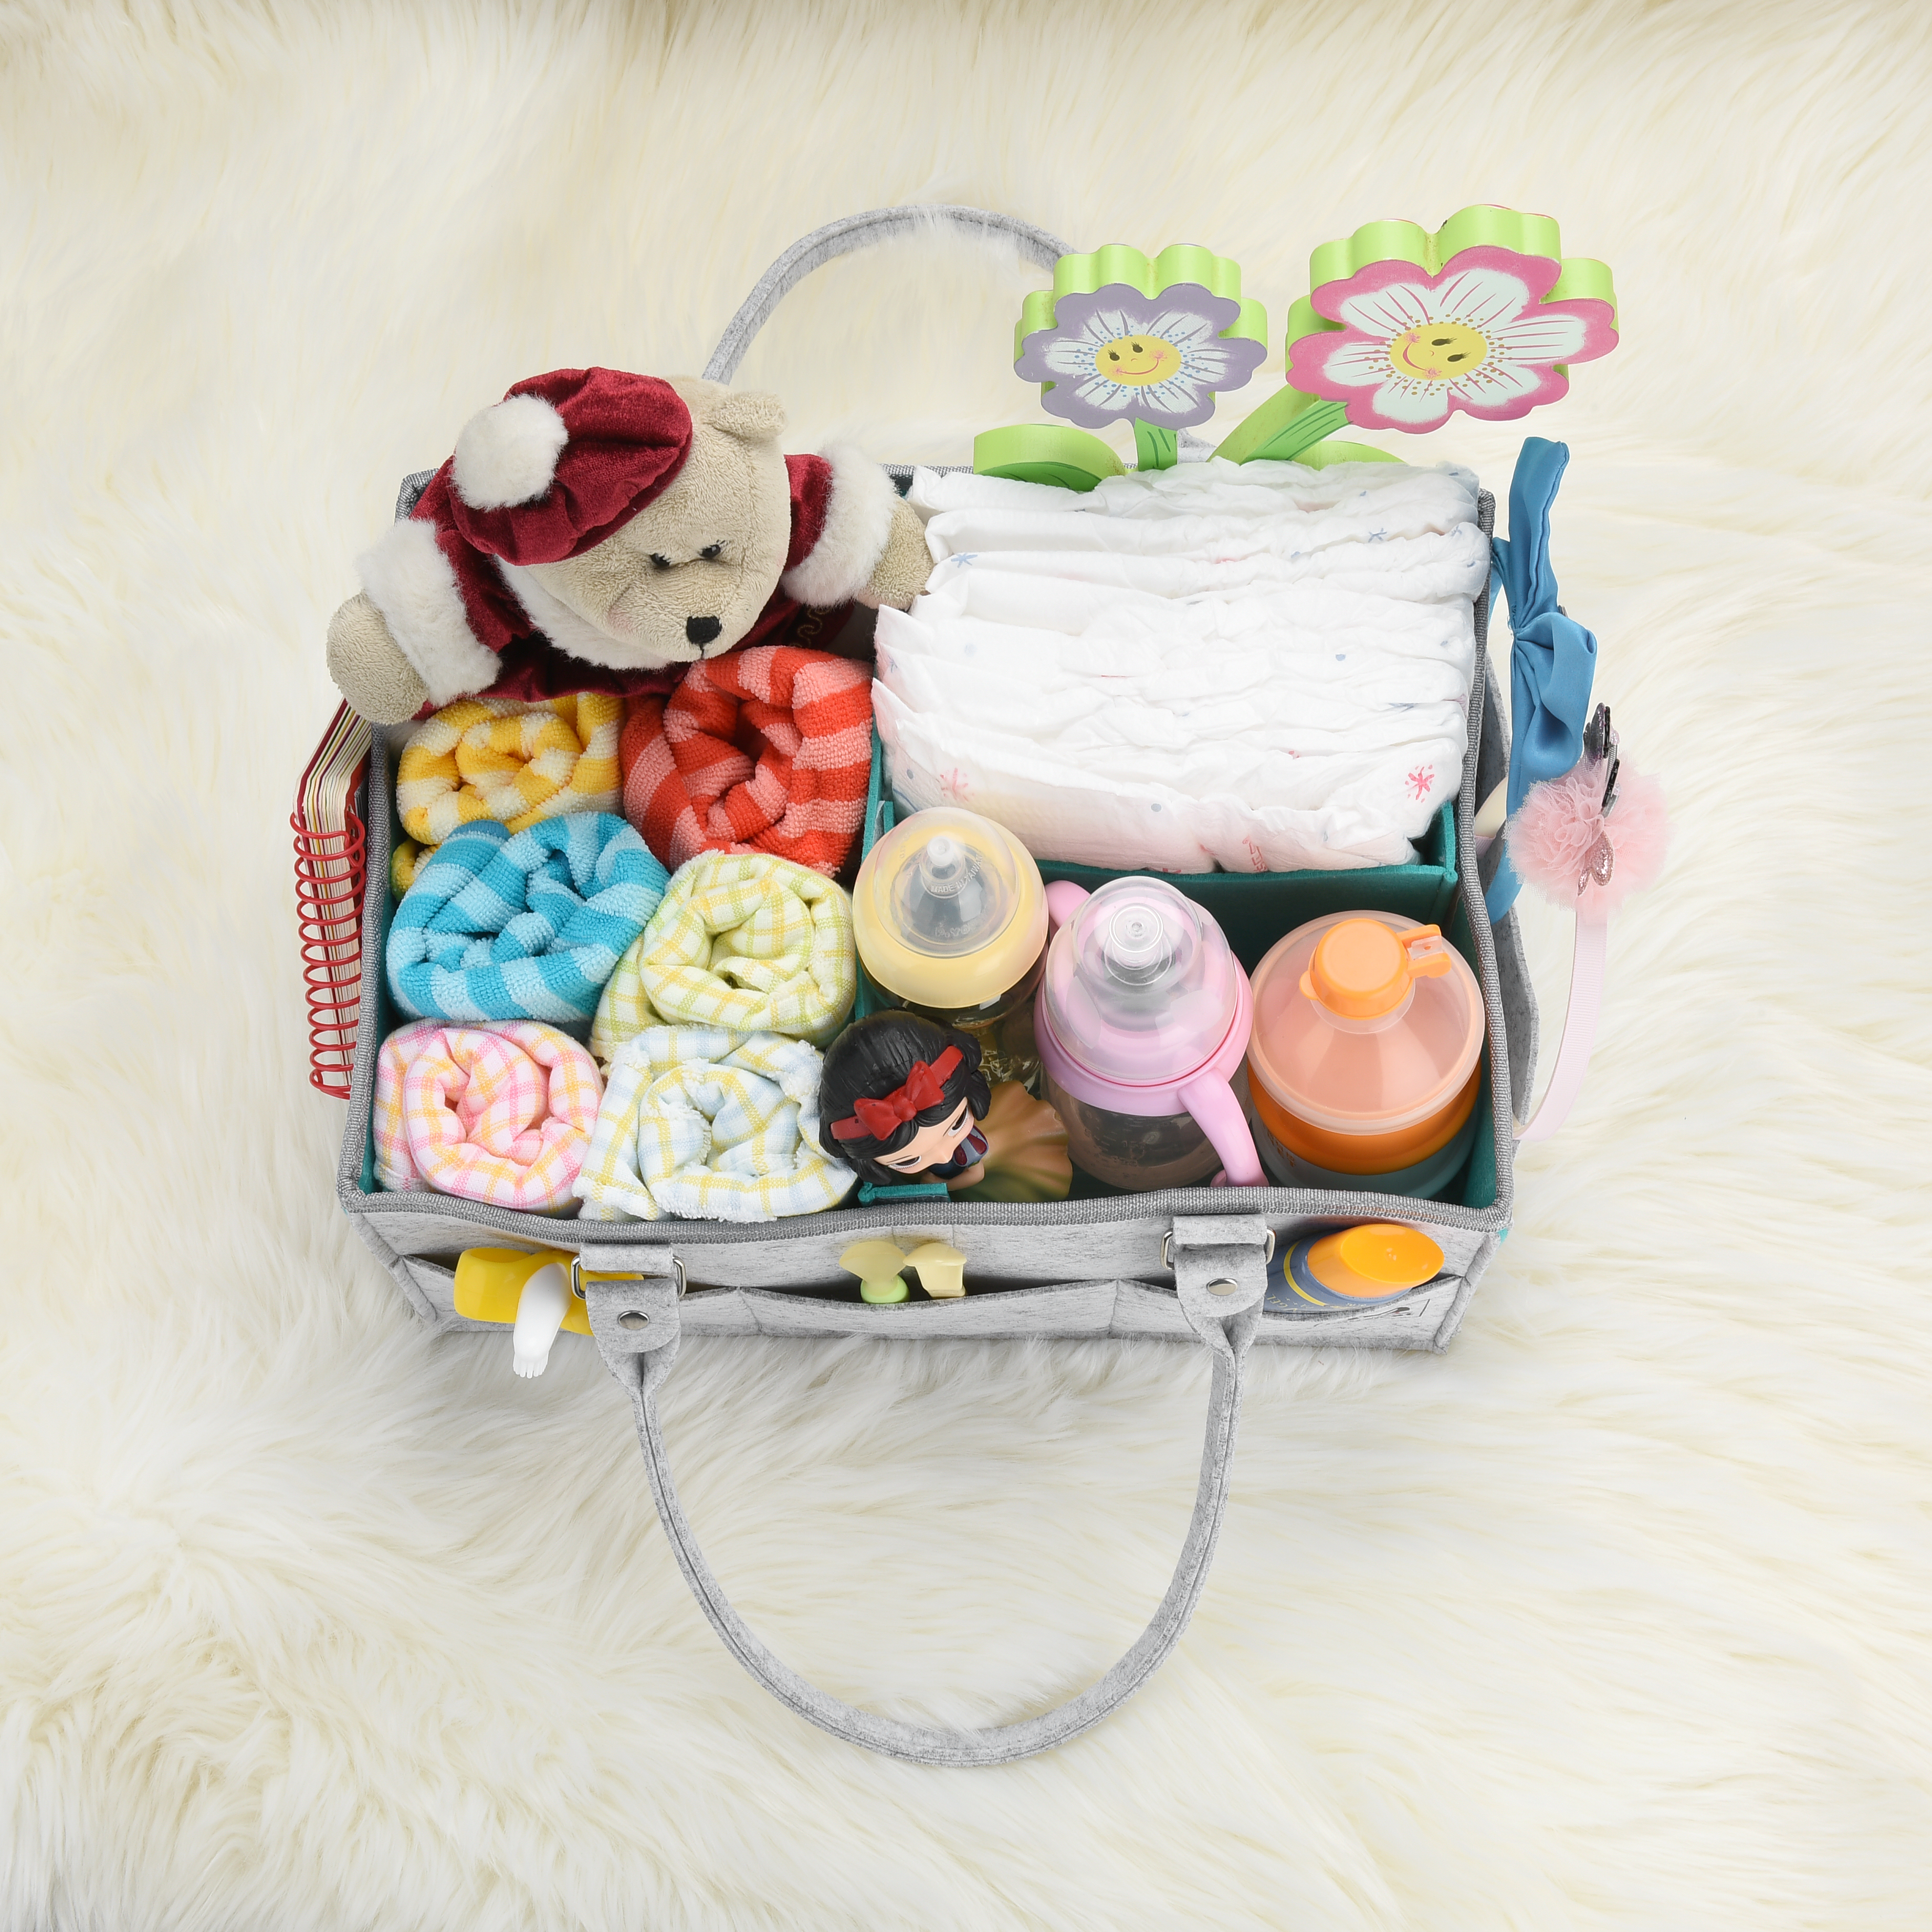 Nursery Organizer And Baby Diaper Caddy Nursery Décor Hanging Diaper Organization To Produce An Effect Toward Clear Vision